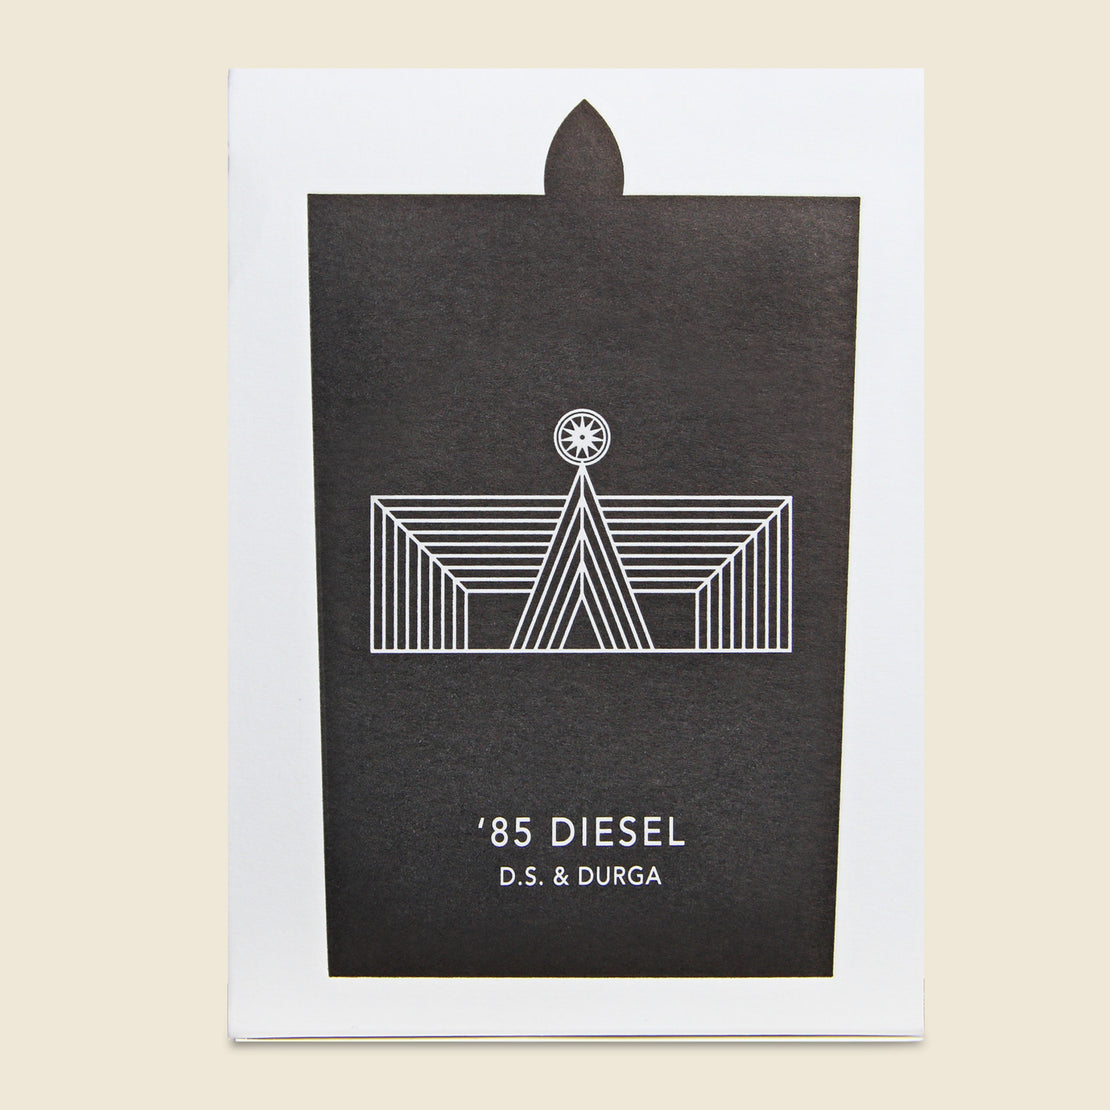 Candle  - 85' Diesel - D.S. & Durga - STAG Provisions - Gift - Candles